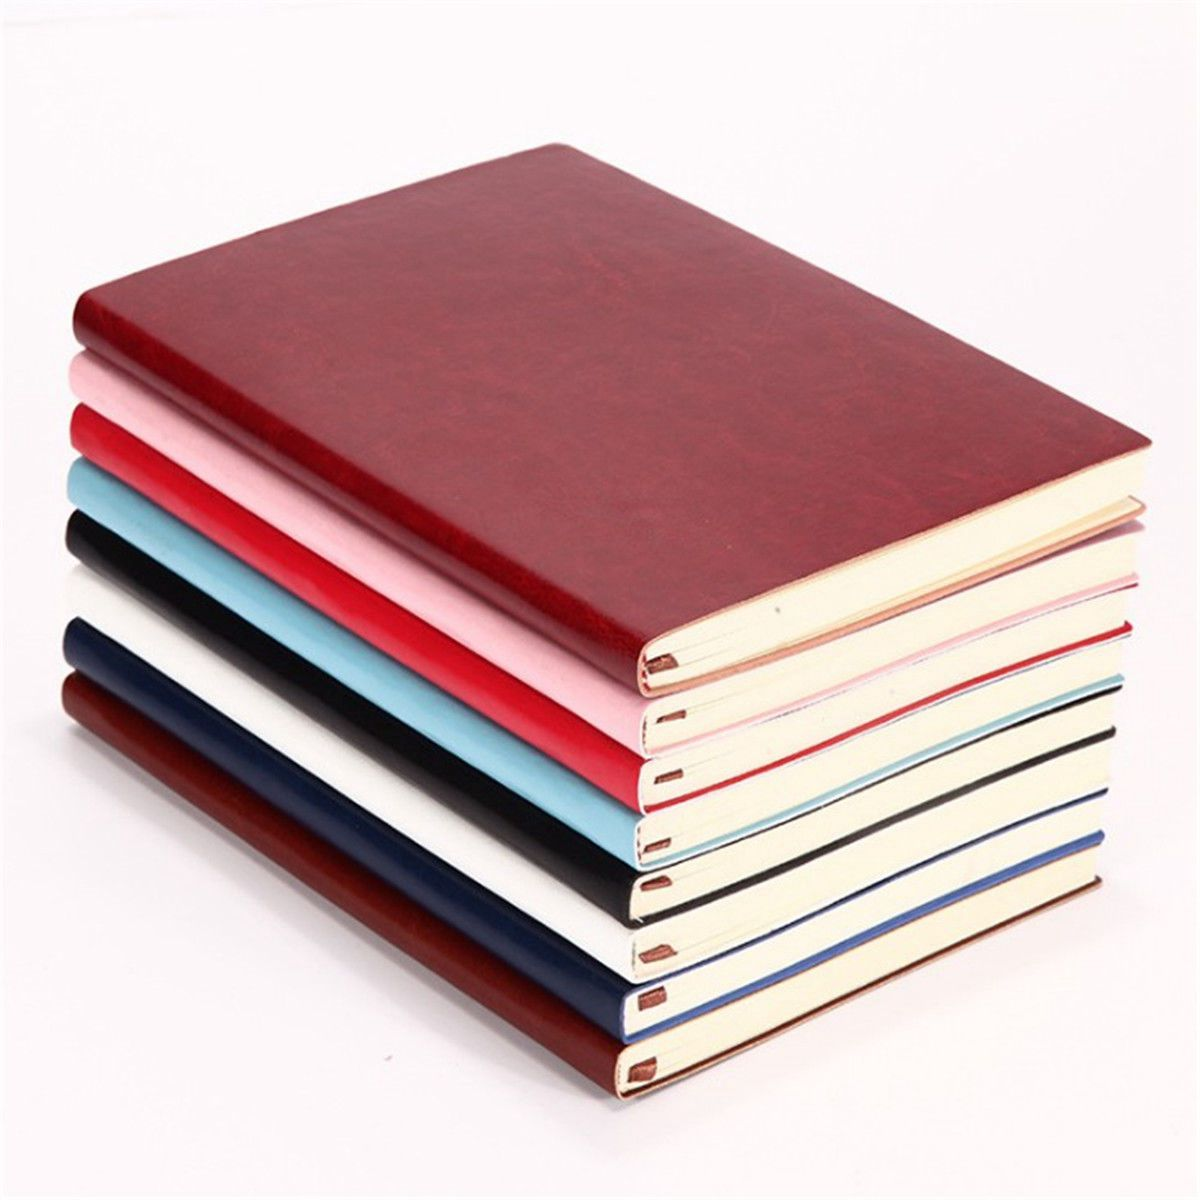 6 Color Random Soft Cover PU Leather Notebook Writing Journal 100 Page Lined Diary Book sitemap xml page 6